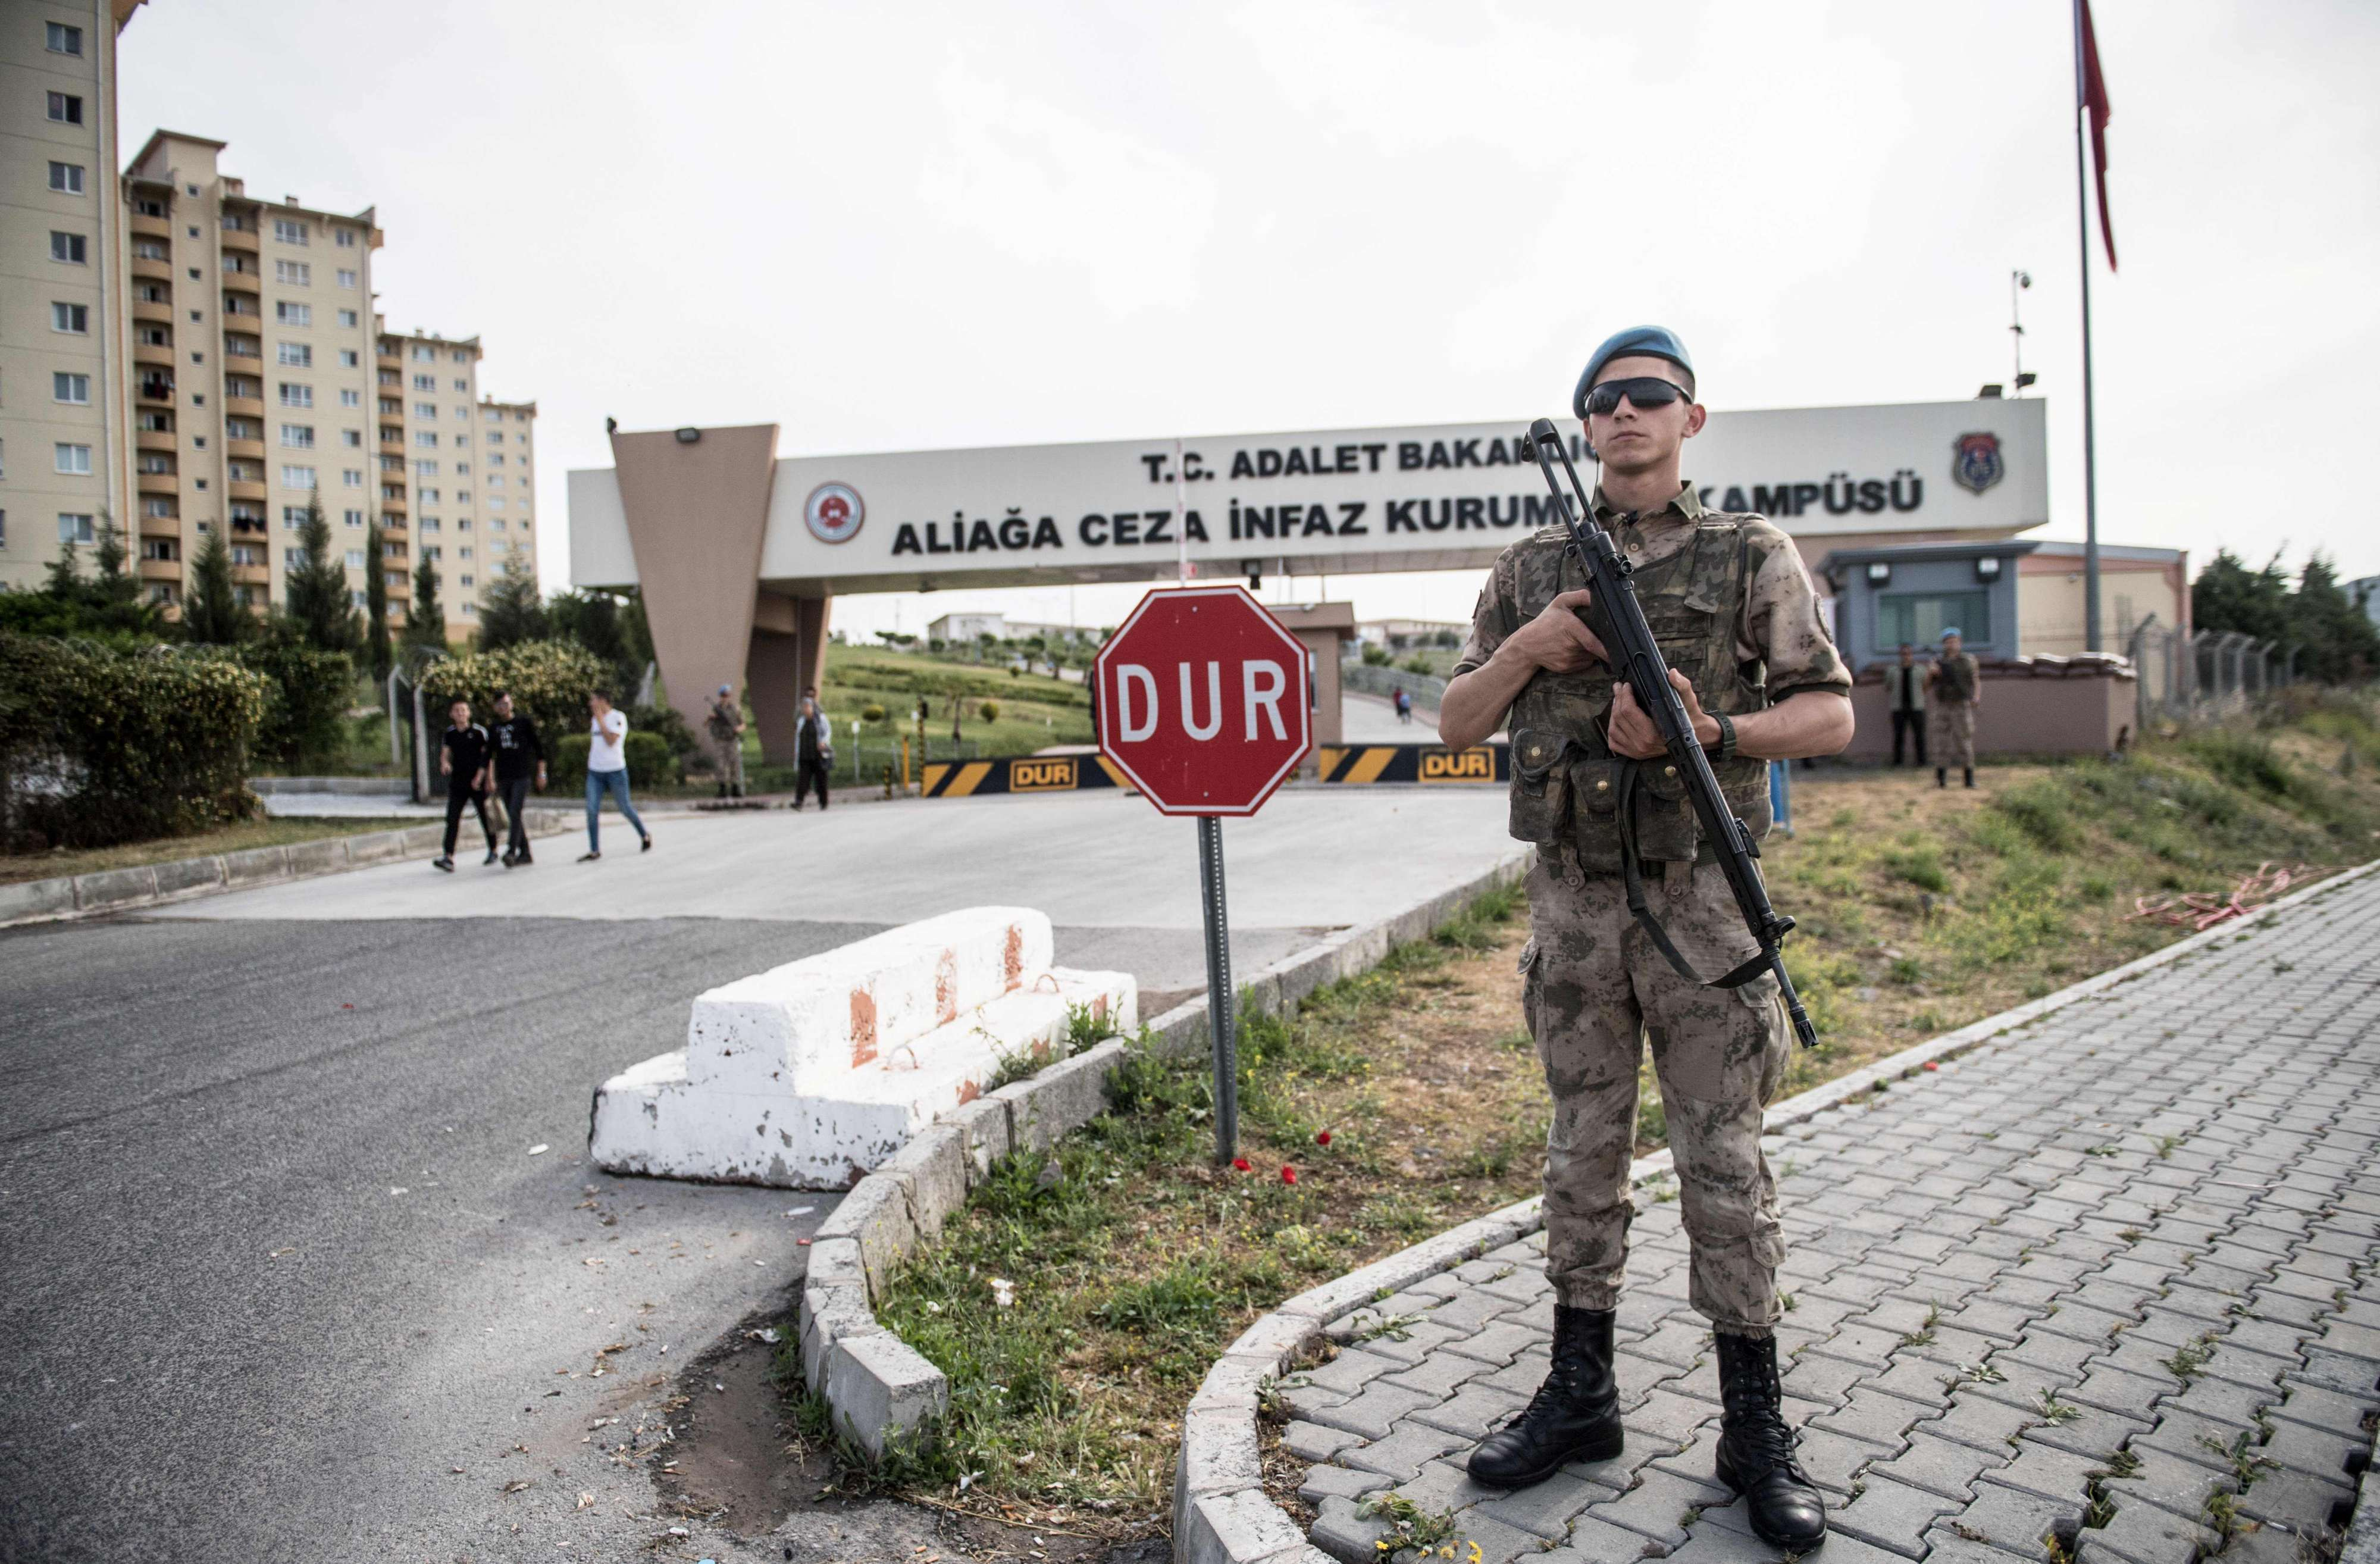 Turkish soldiers stand guard at the entrance of the Aliaga court and prison complex during the trial of US pastor Andrew Brunson, on May 7. (AFP)